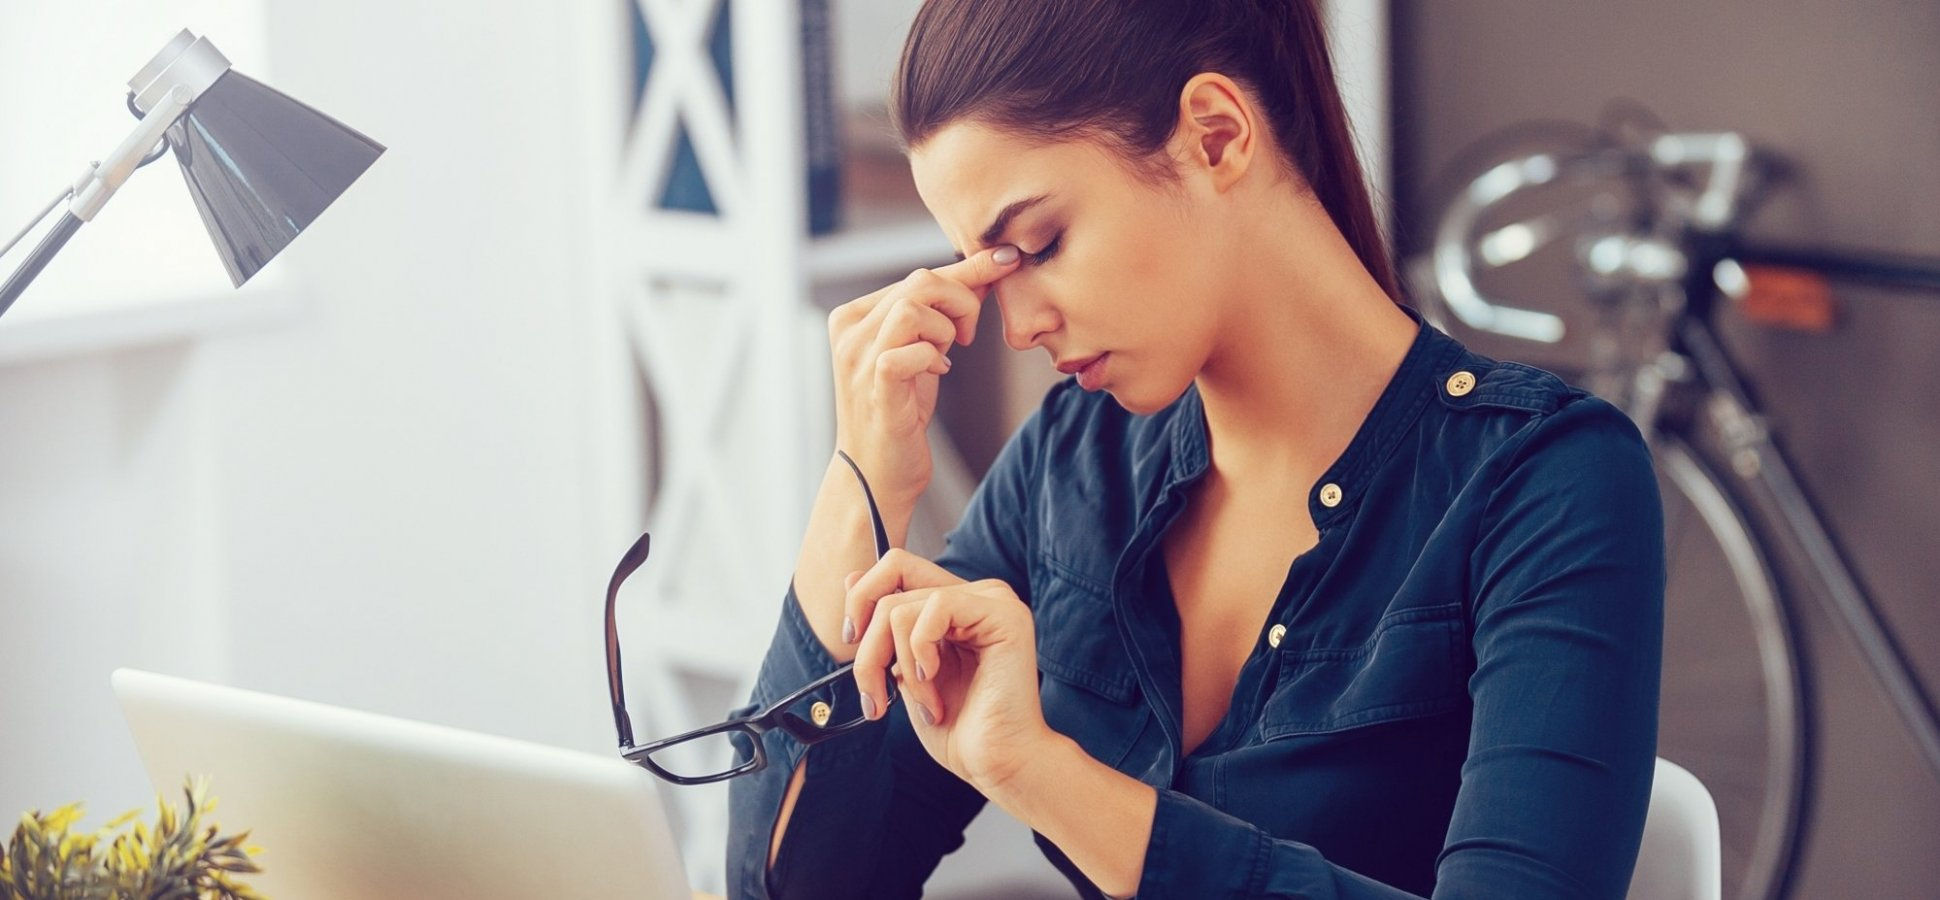 Burned Out? This 1 Habit Will Ensure You Never Burn Out Again